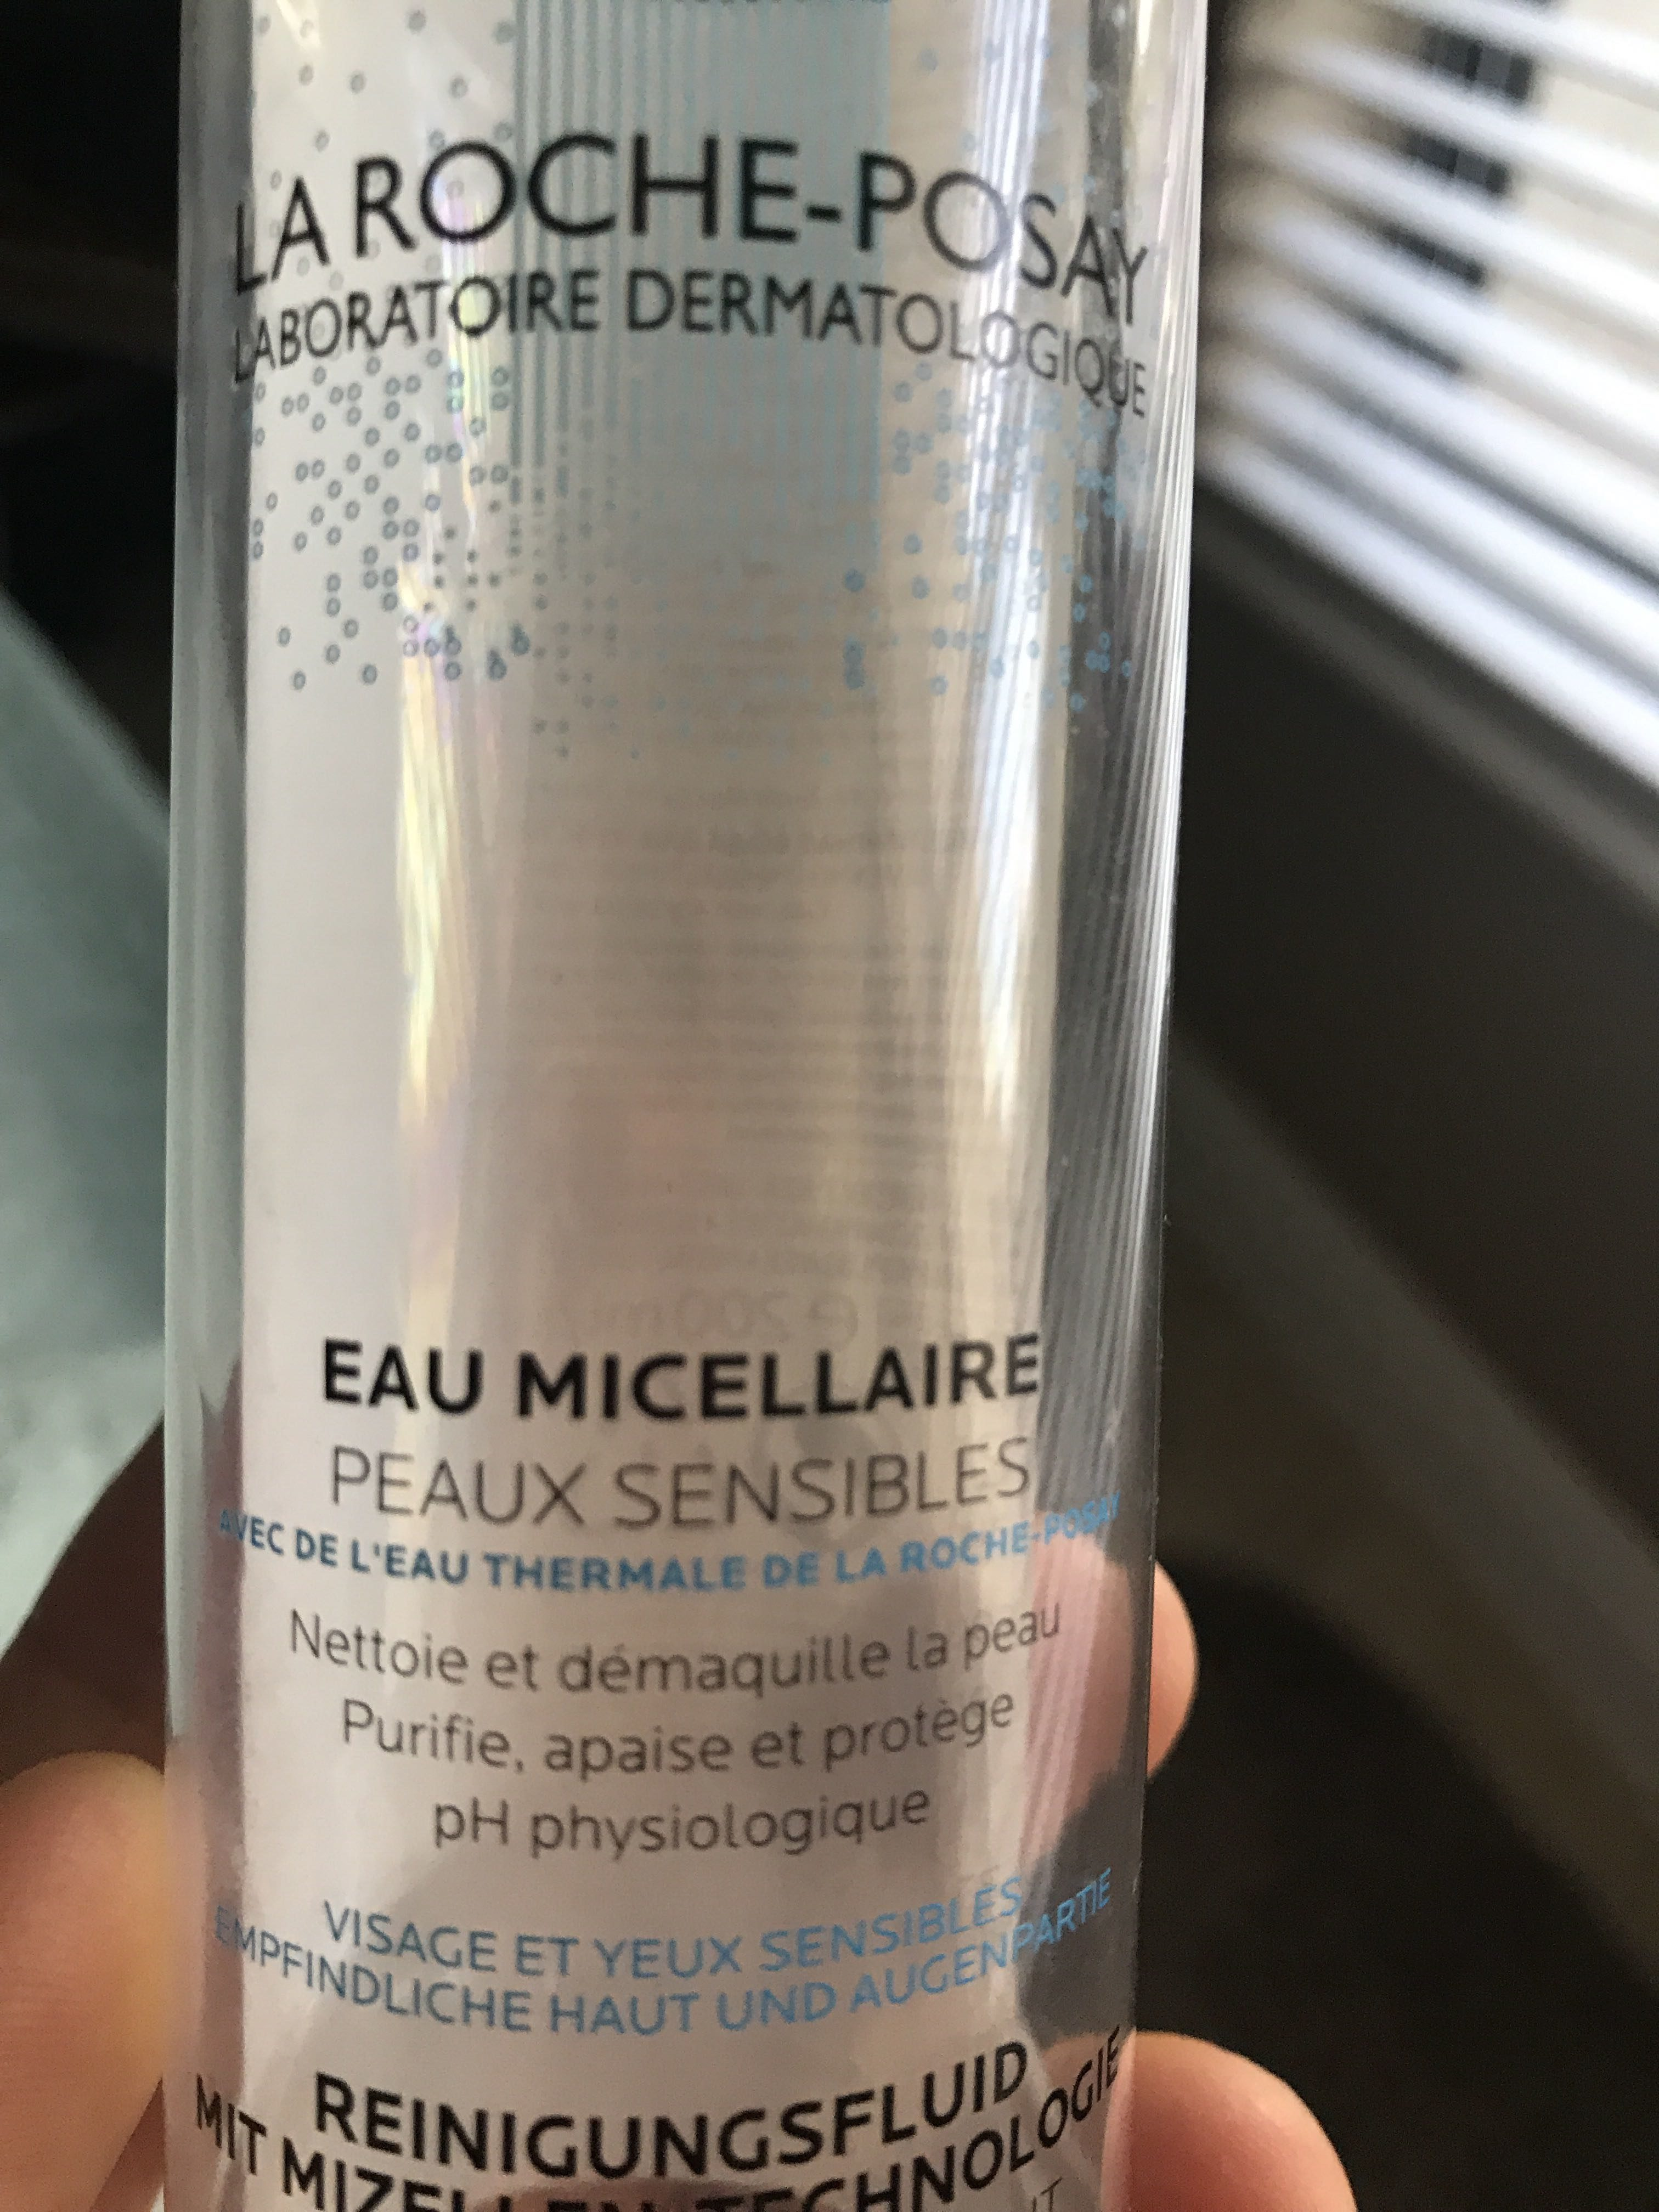 Eau micellaire - Product - it